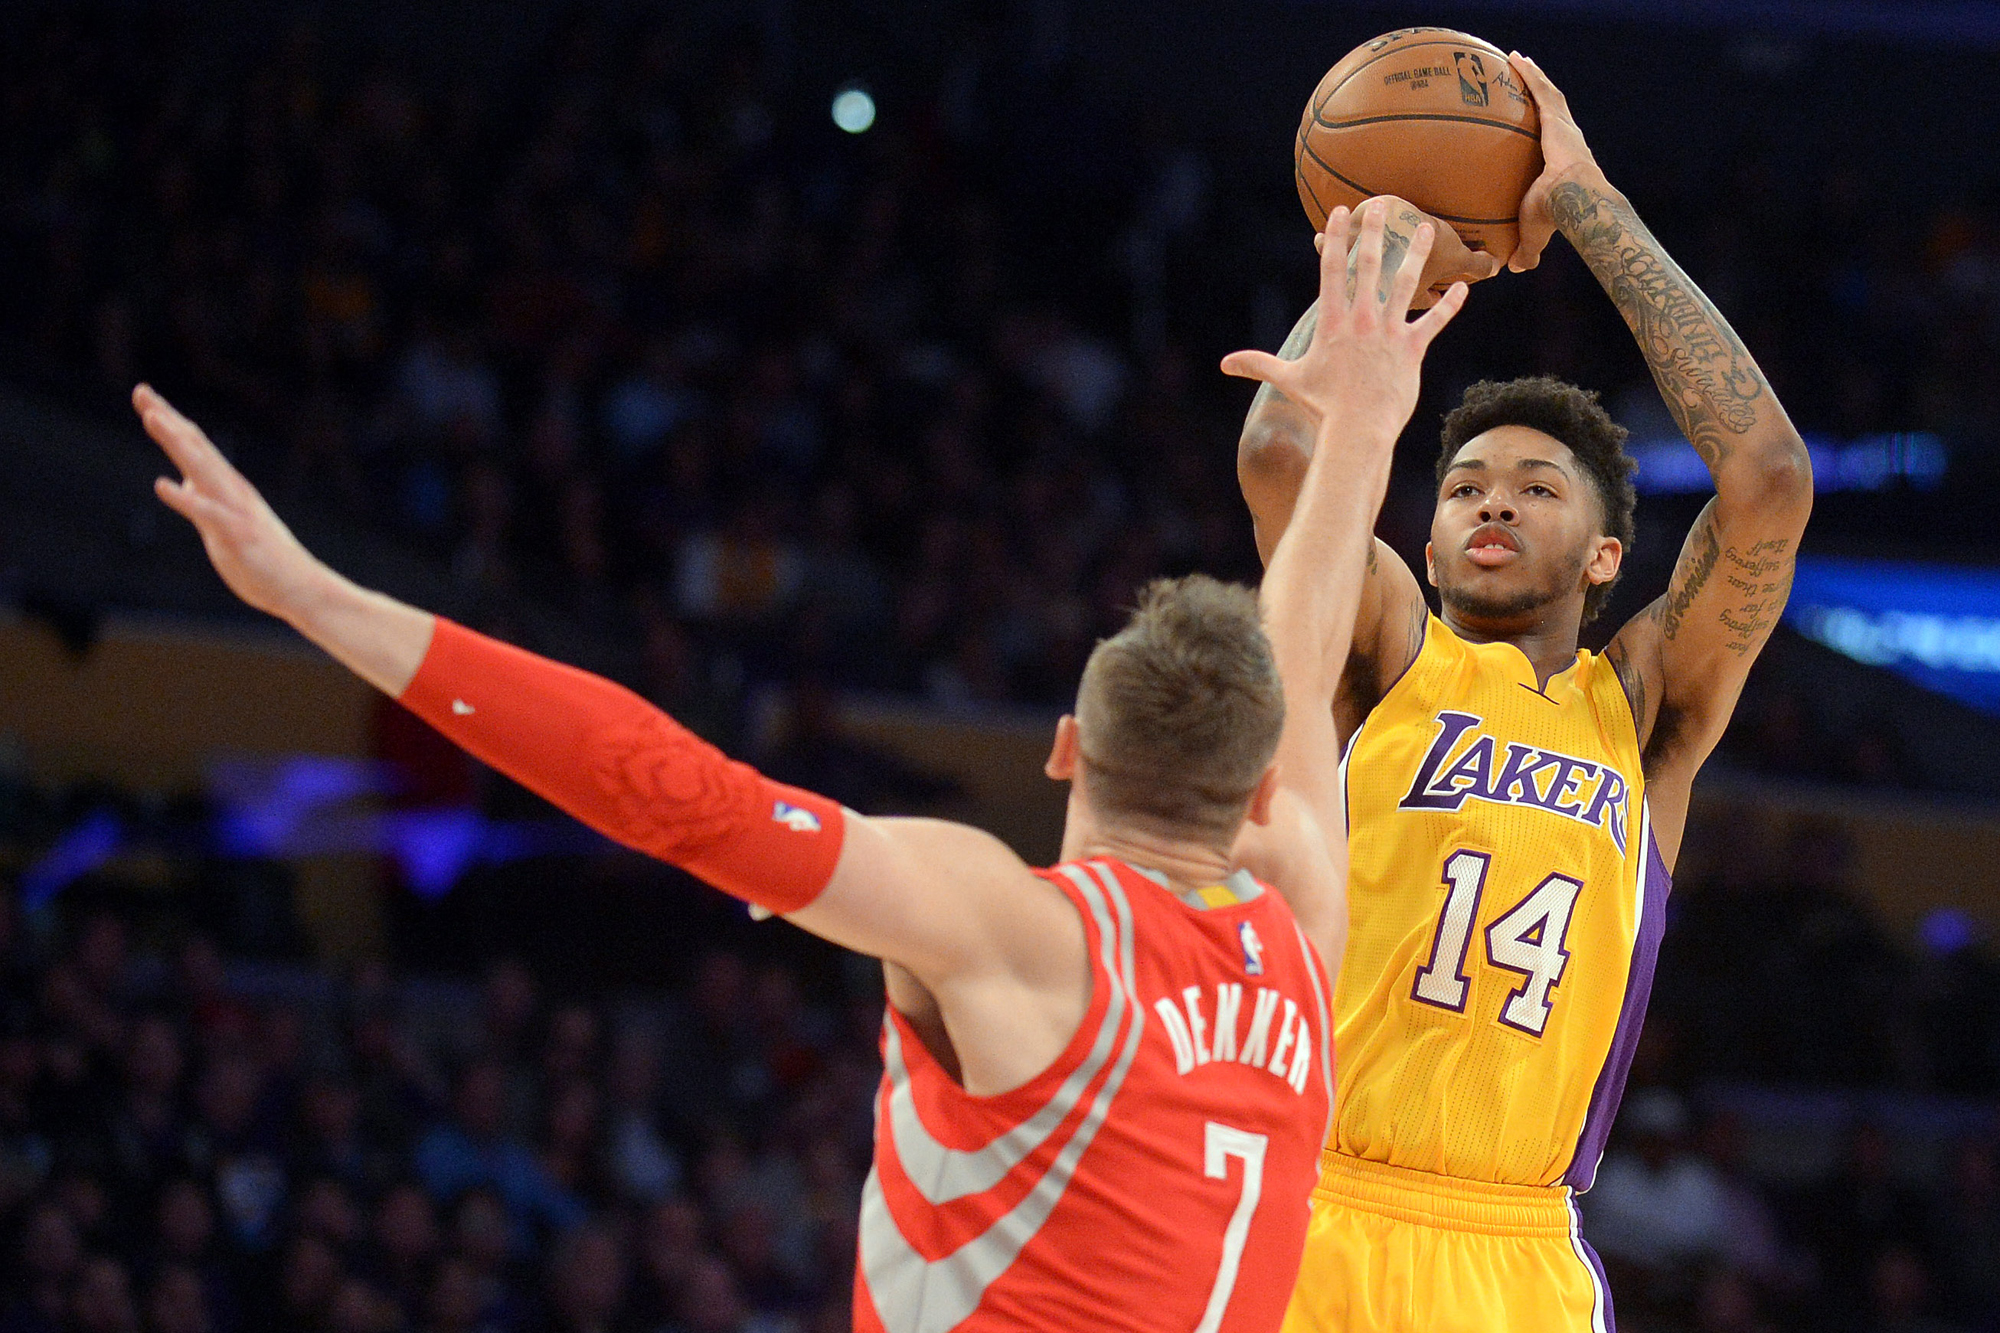 Los Angeles Lakers forward Brandon Ingram (14) shooots against the defense of Houston Rockets forward Sam Dekker (7) during the second half at Staples Center.